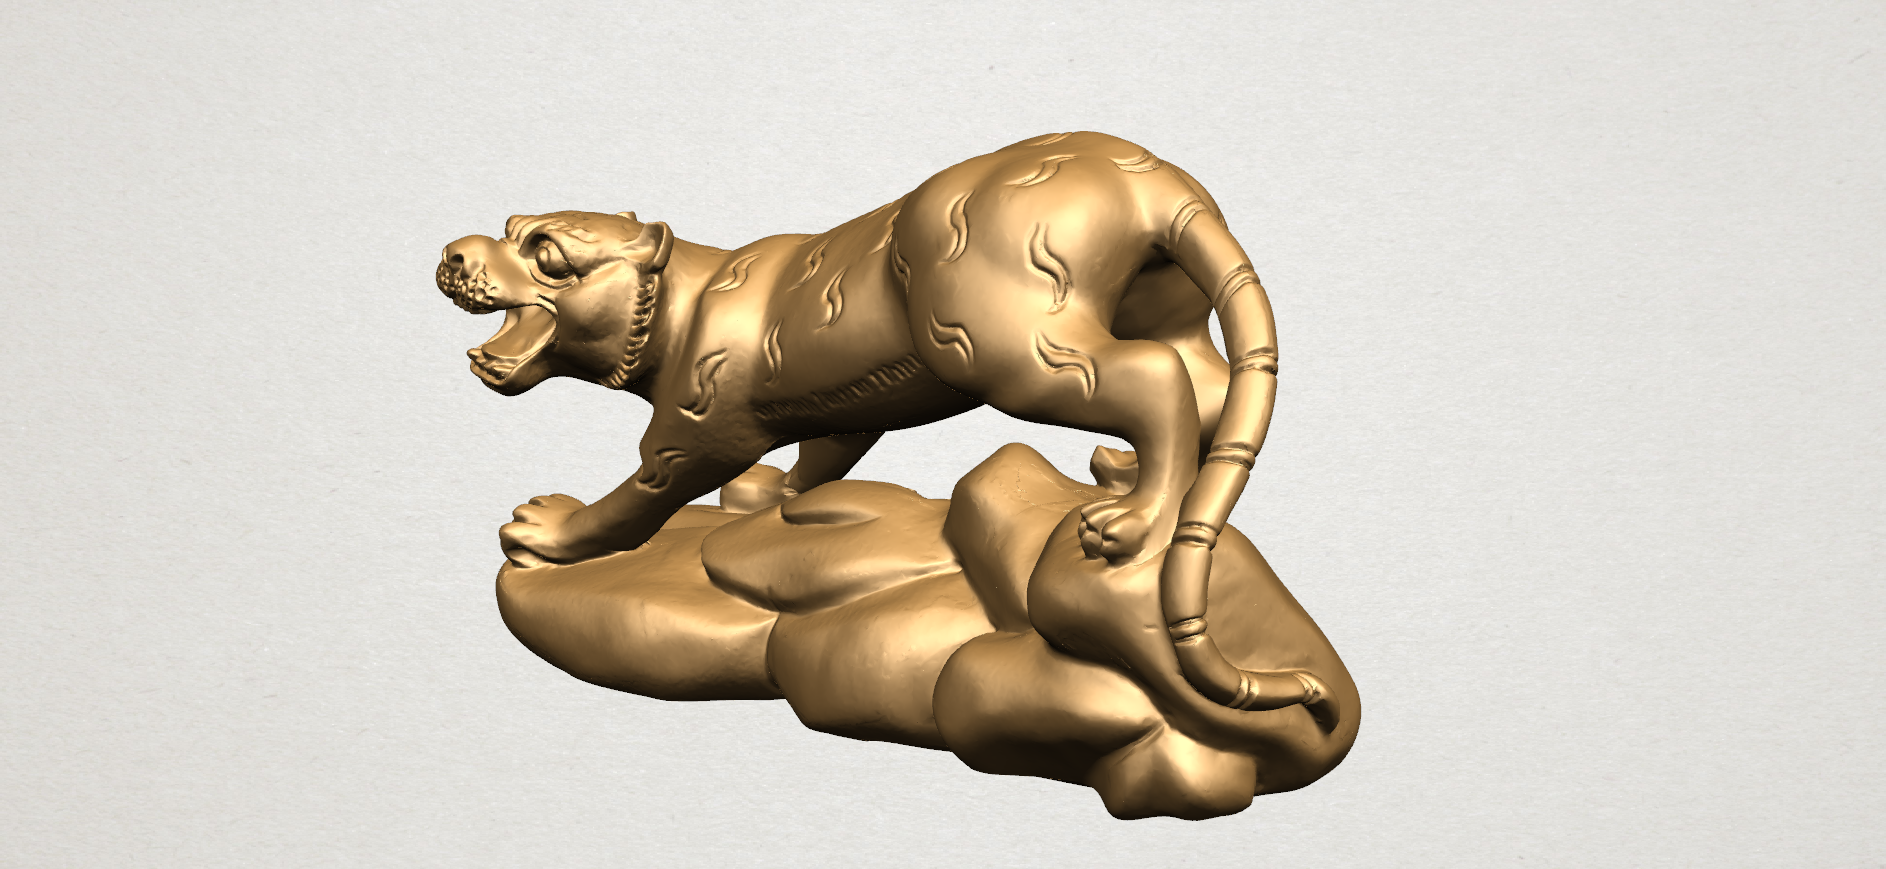 Chinese Horoscope03-A02.png Download free STL file Chinese Horoscope 03 Tiger • 3D printer template, GeorgesNikkei